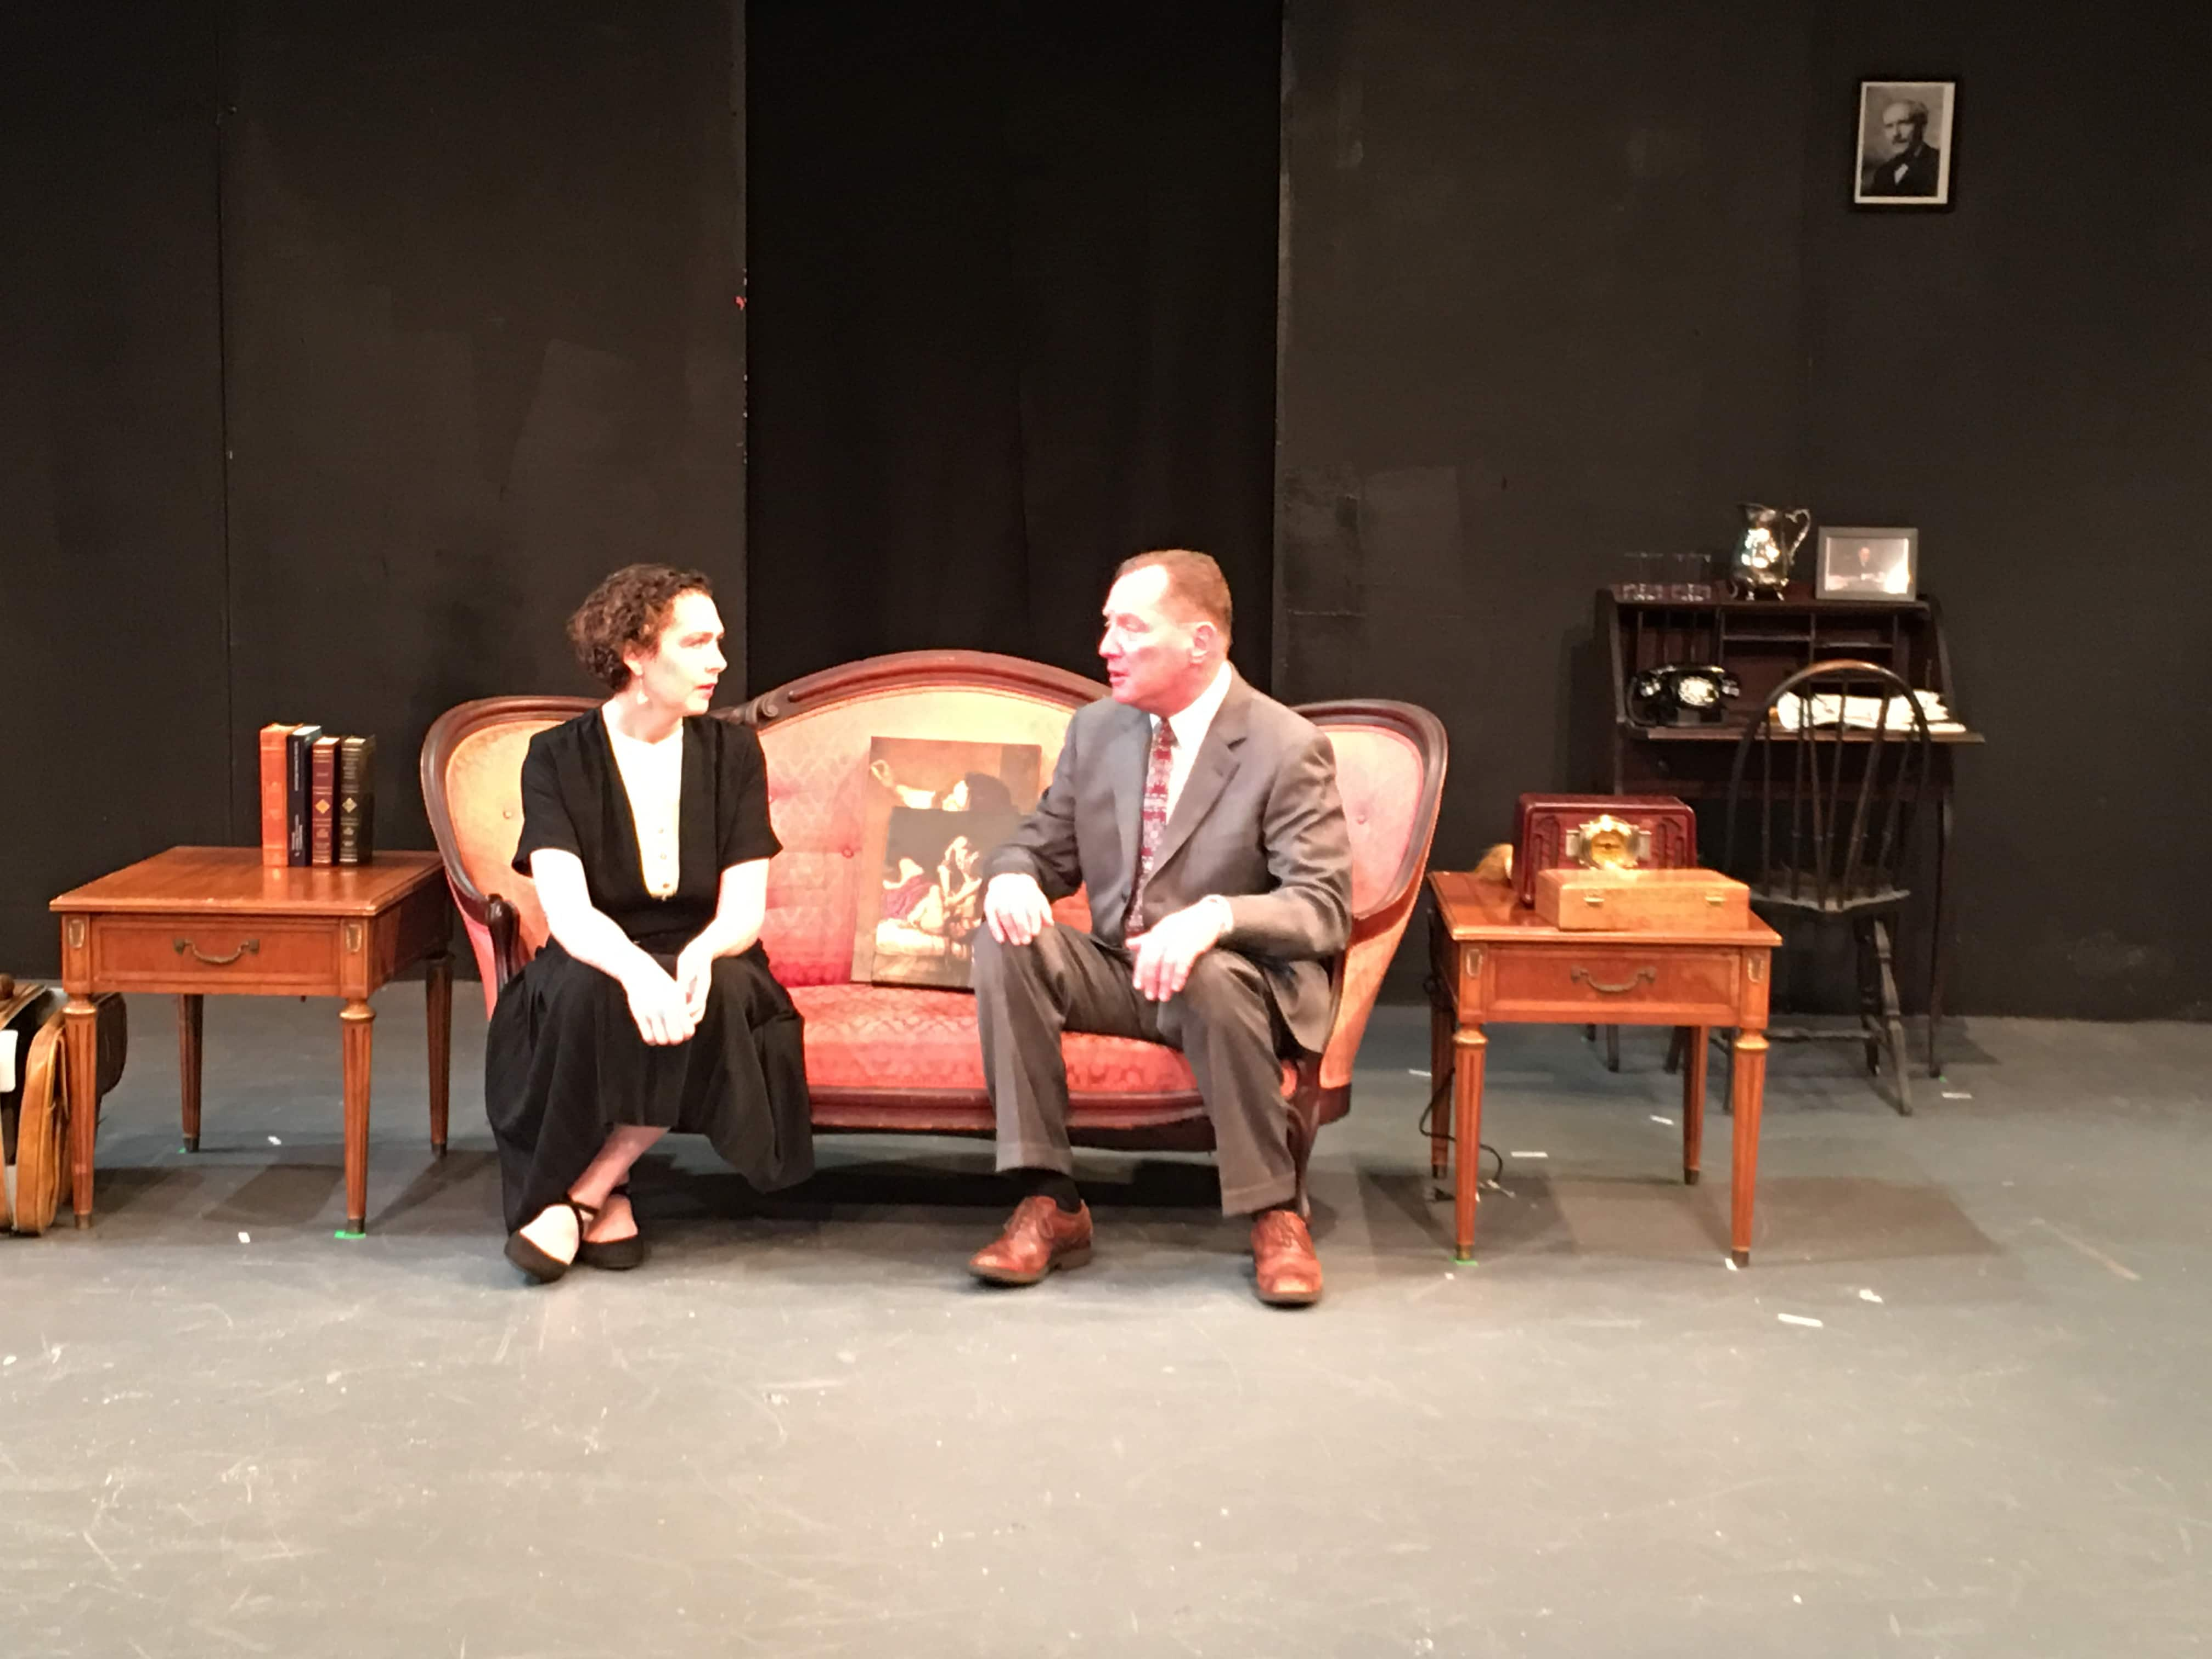 Margherita Sarfatti (Emily Canavan) and Benito Mussolini (Bob Cohen) in Margherita, now playing at the Greenbelt Arts Center. Photo by Sam Simon.